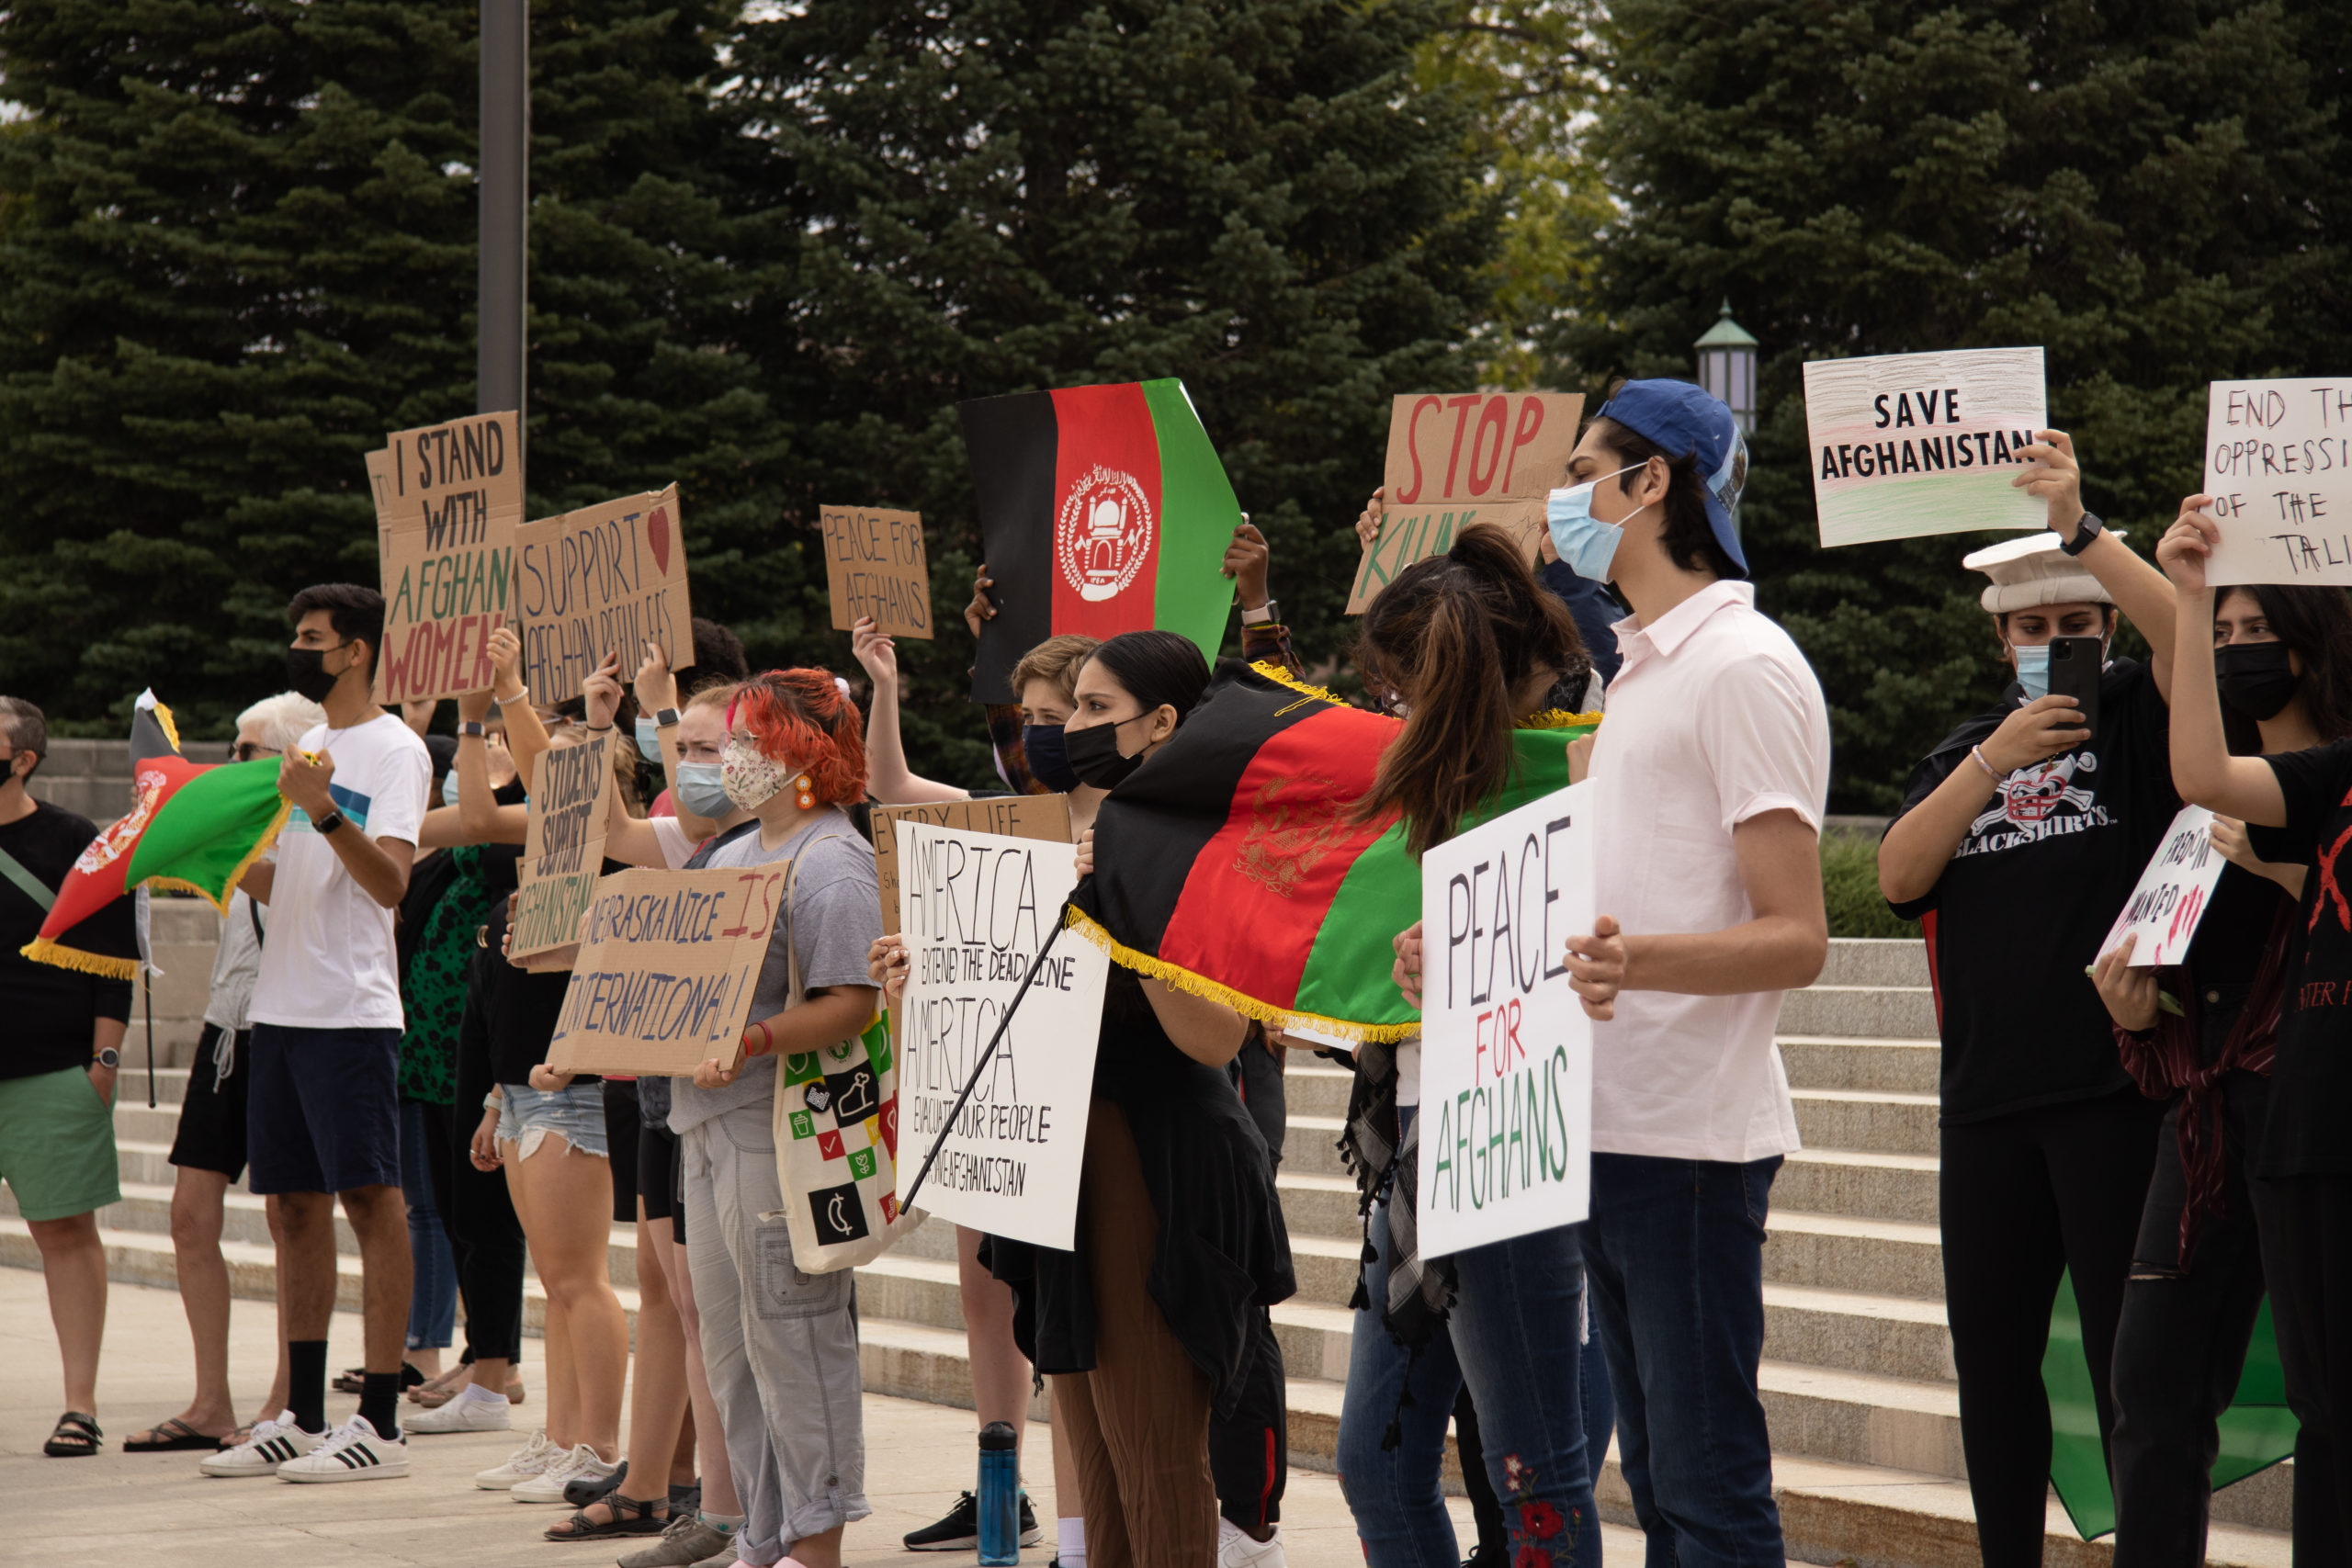 IMG 9316 scaled - Lincolnites rally to welcome Afghan refugees